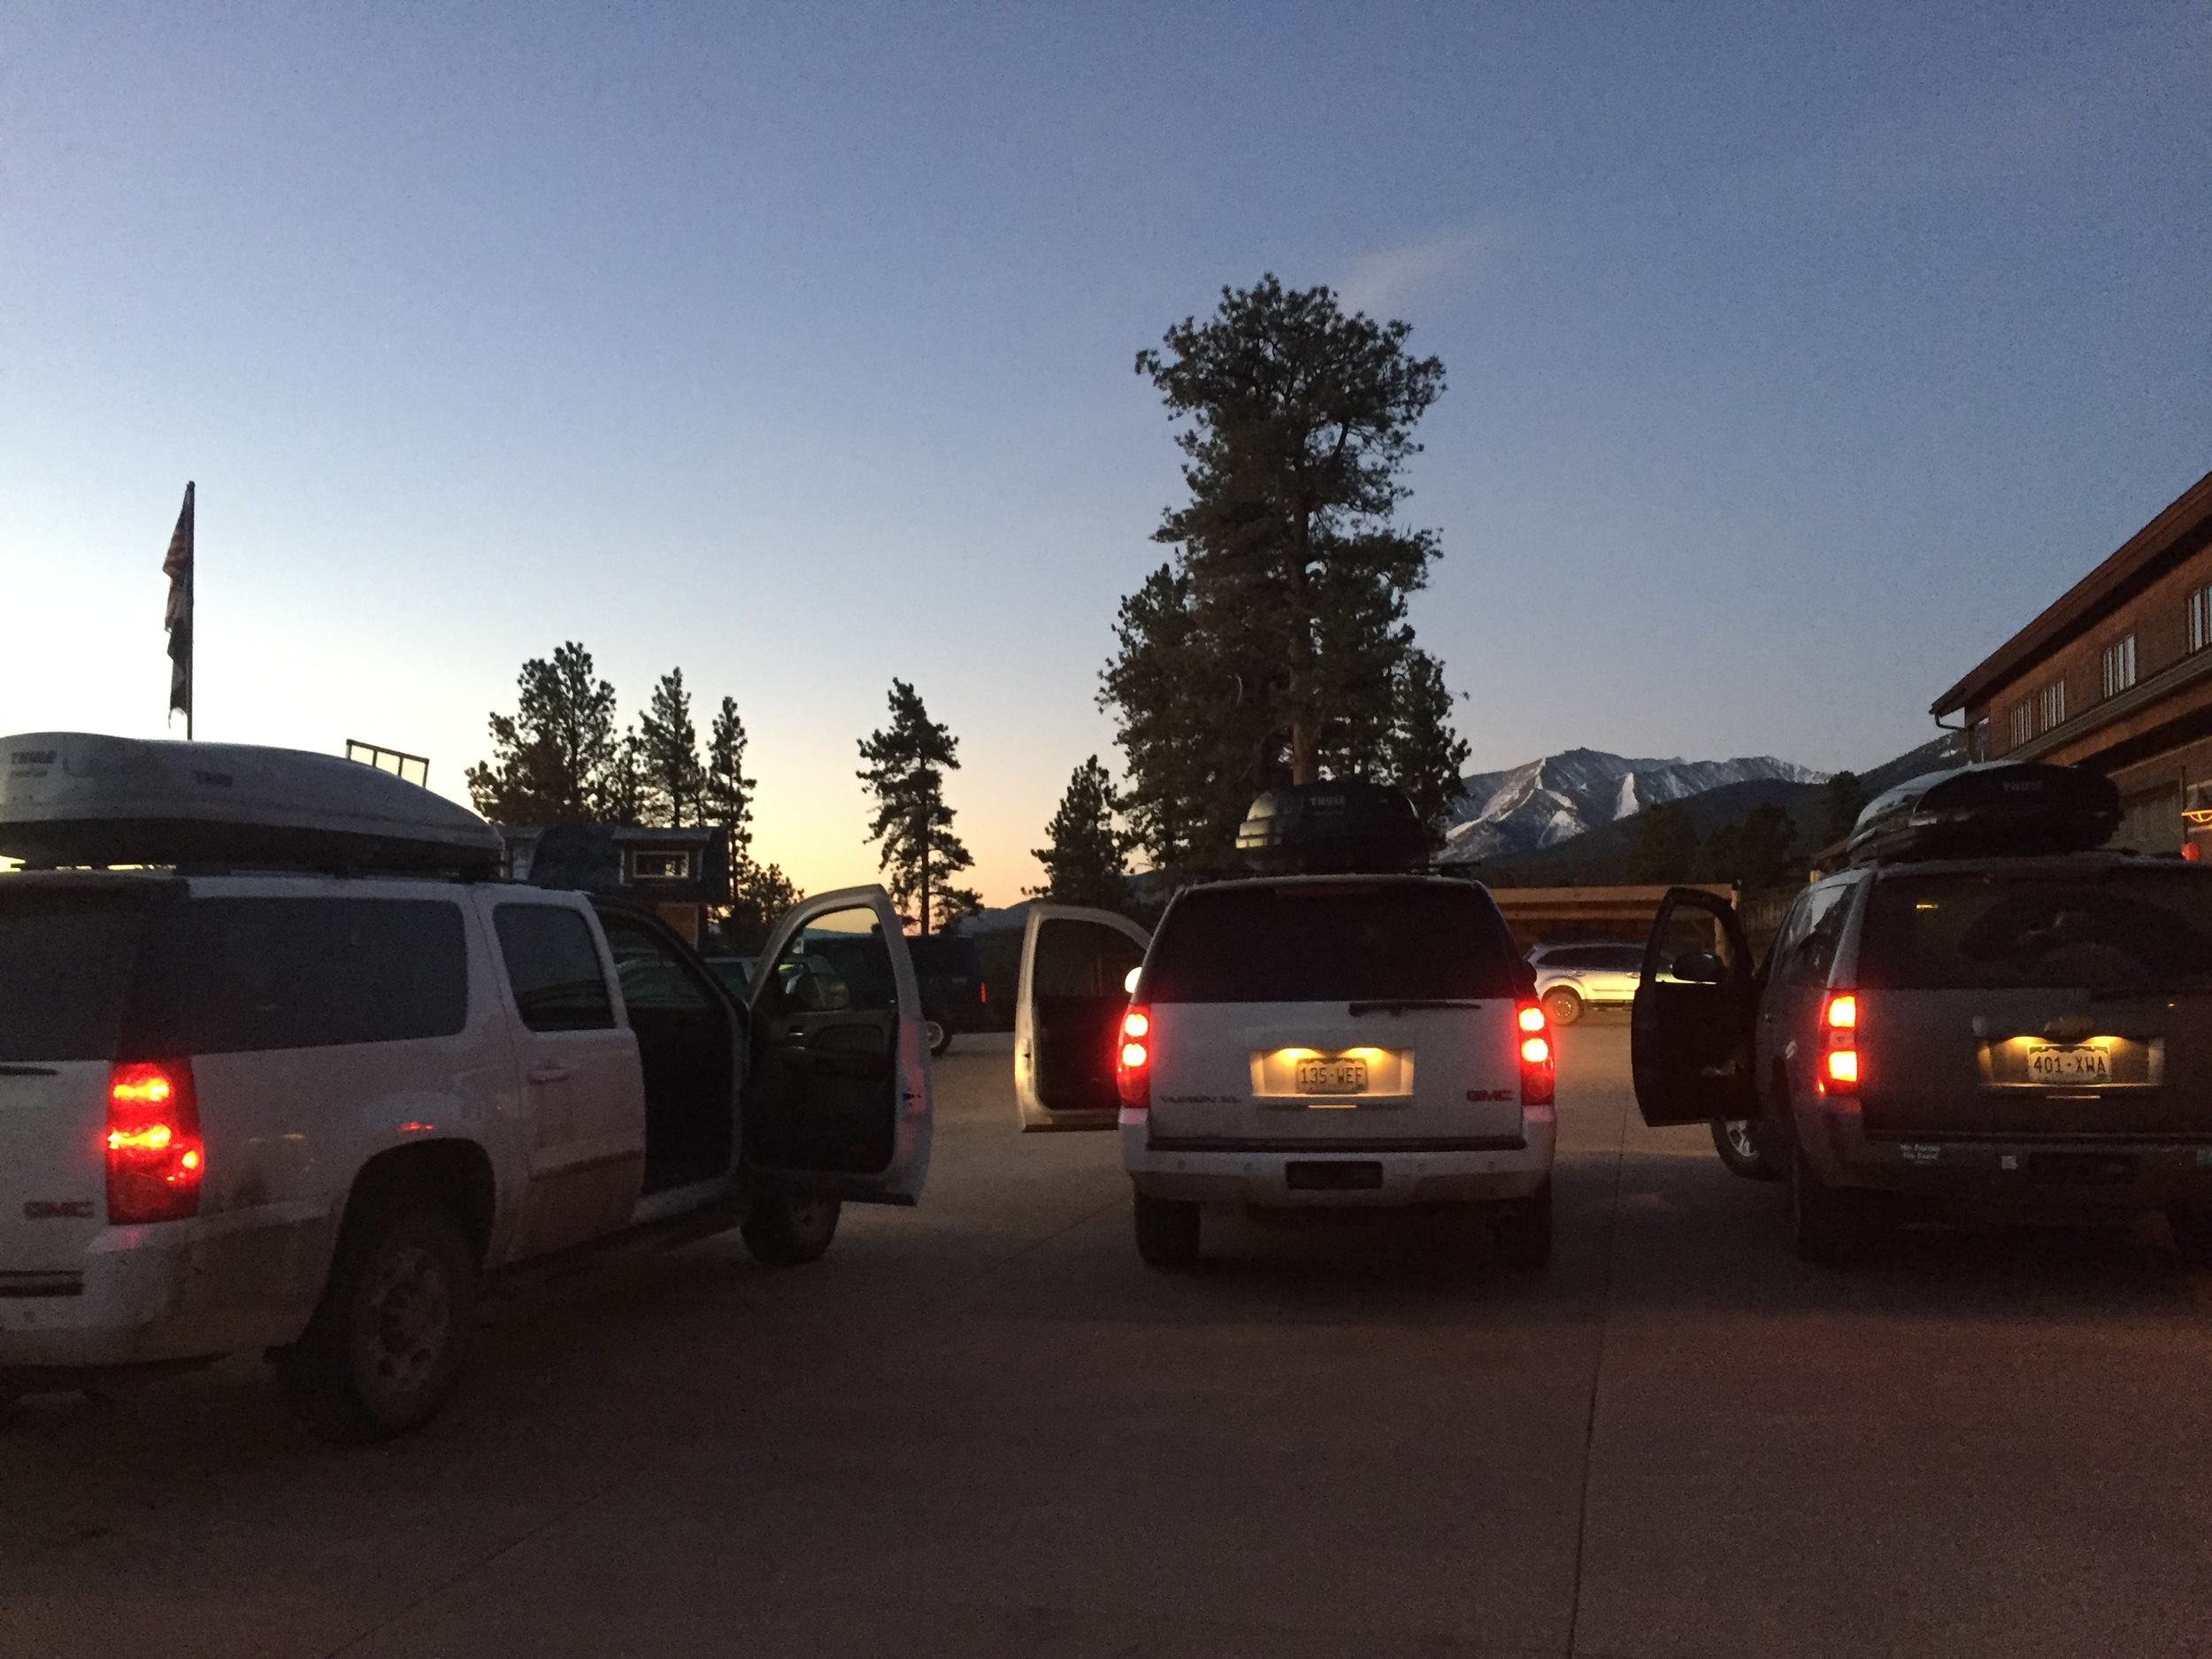 Loading up the vehicles in the pre-dawn light